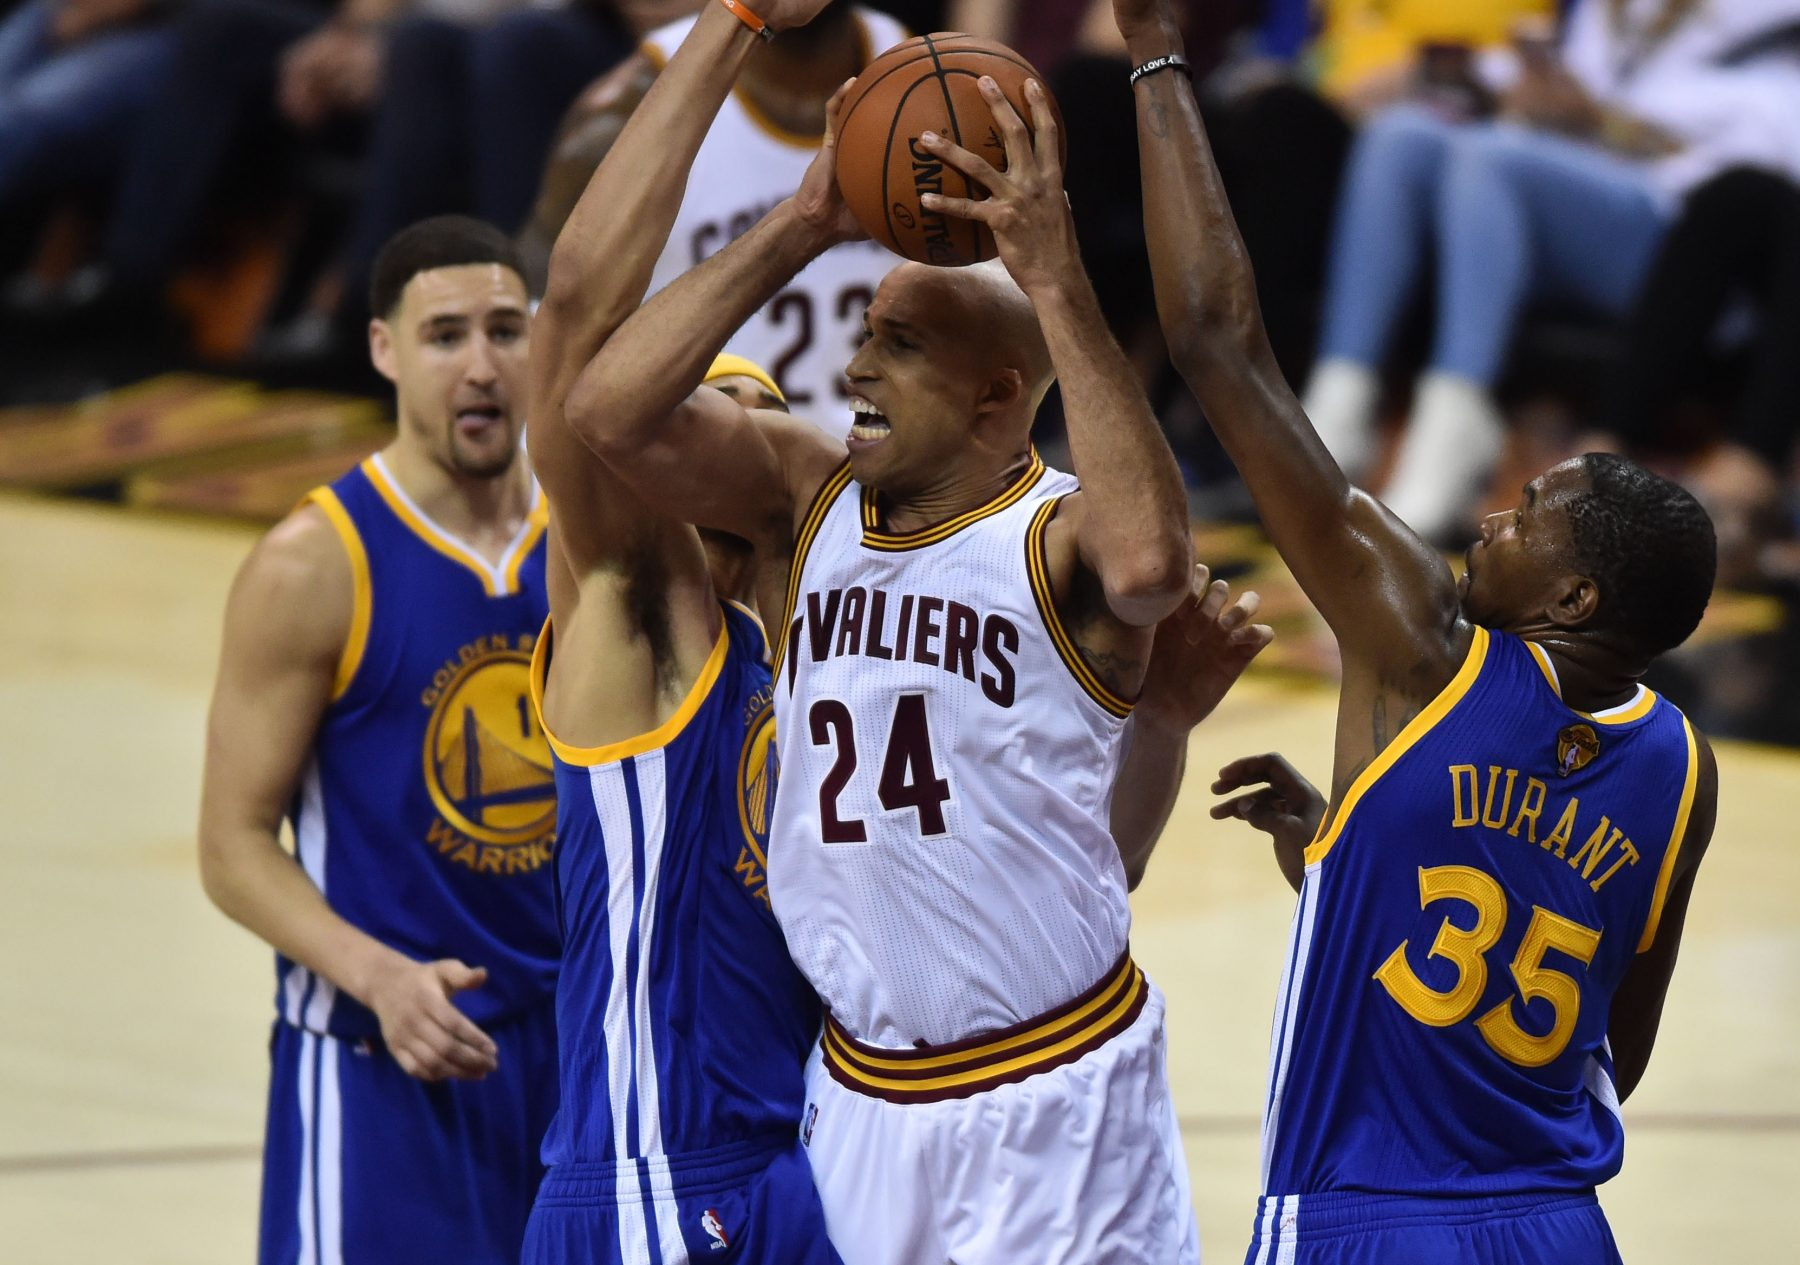 Cleveland Cavaliers Golden State Warriors Richard Jefferson LeBron James Kevin Durant Klay Thompson JaVale McGee